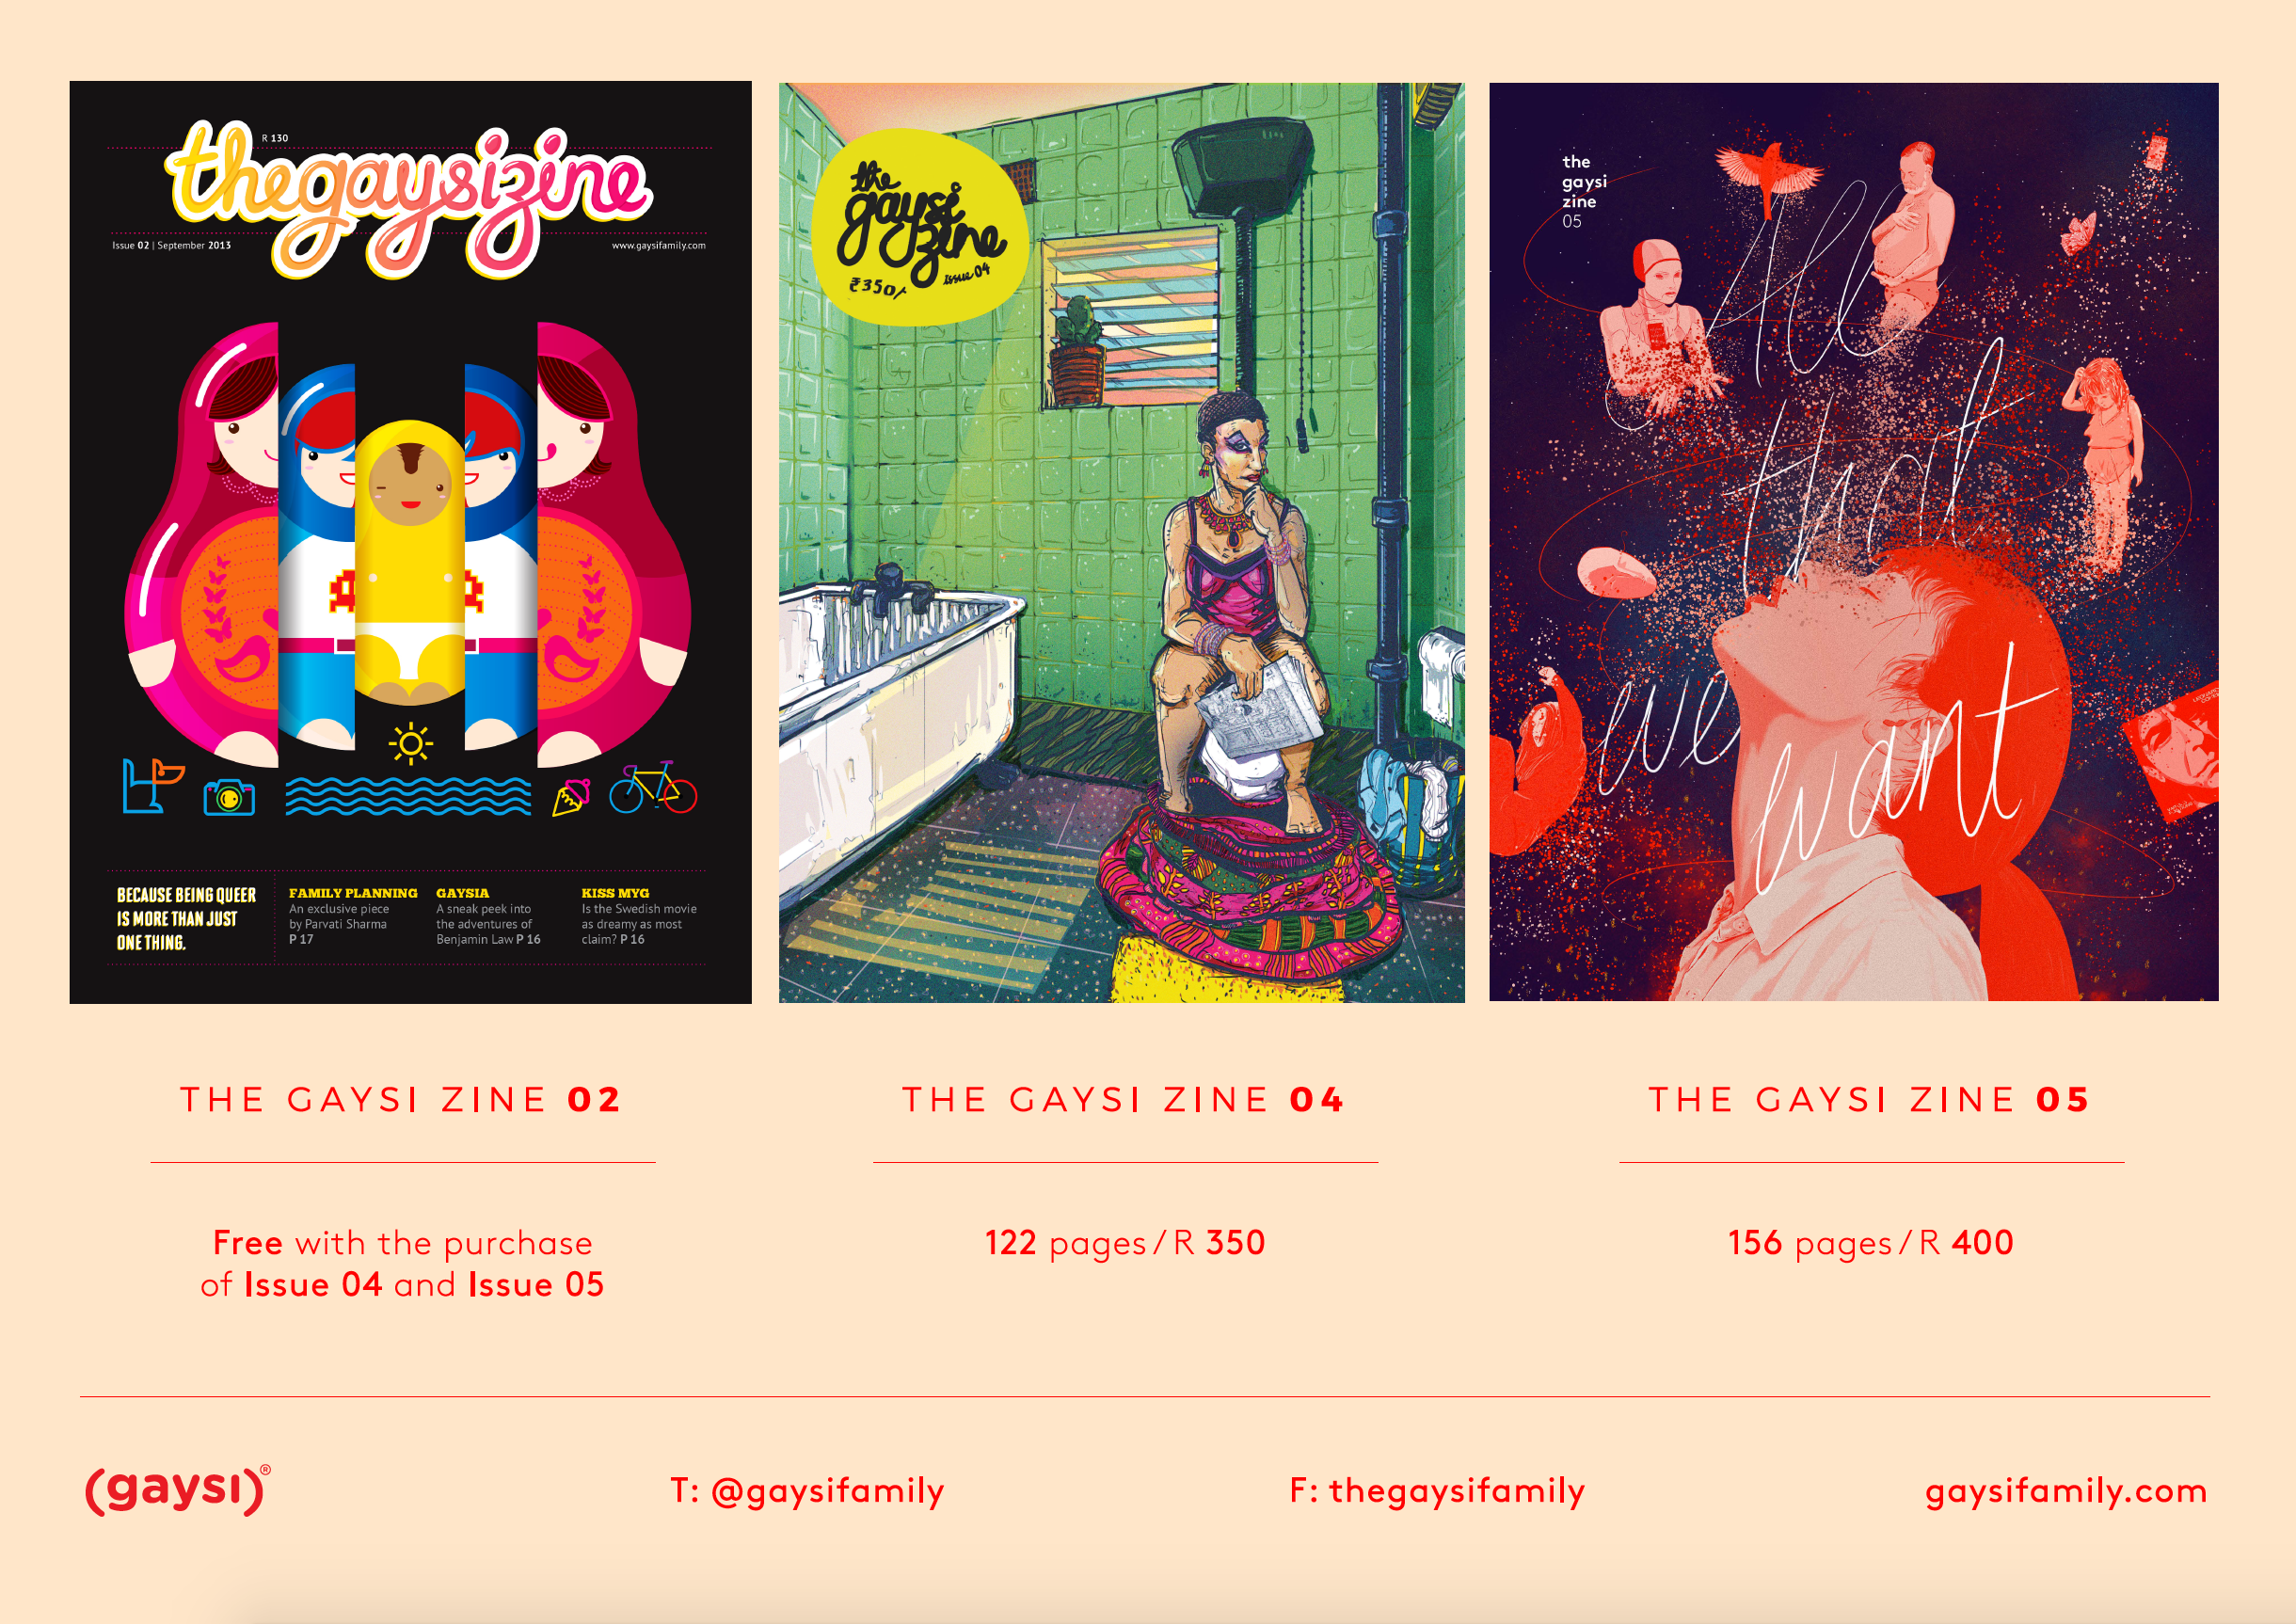 Buy The Gaysi Zine Issue 4 & 5 = Get Issue 2 for FREE